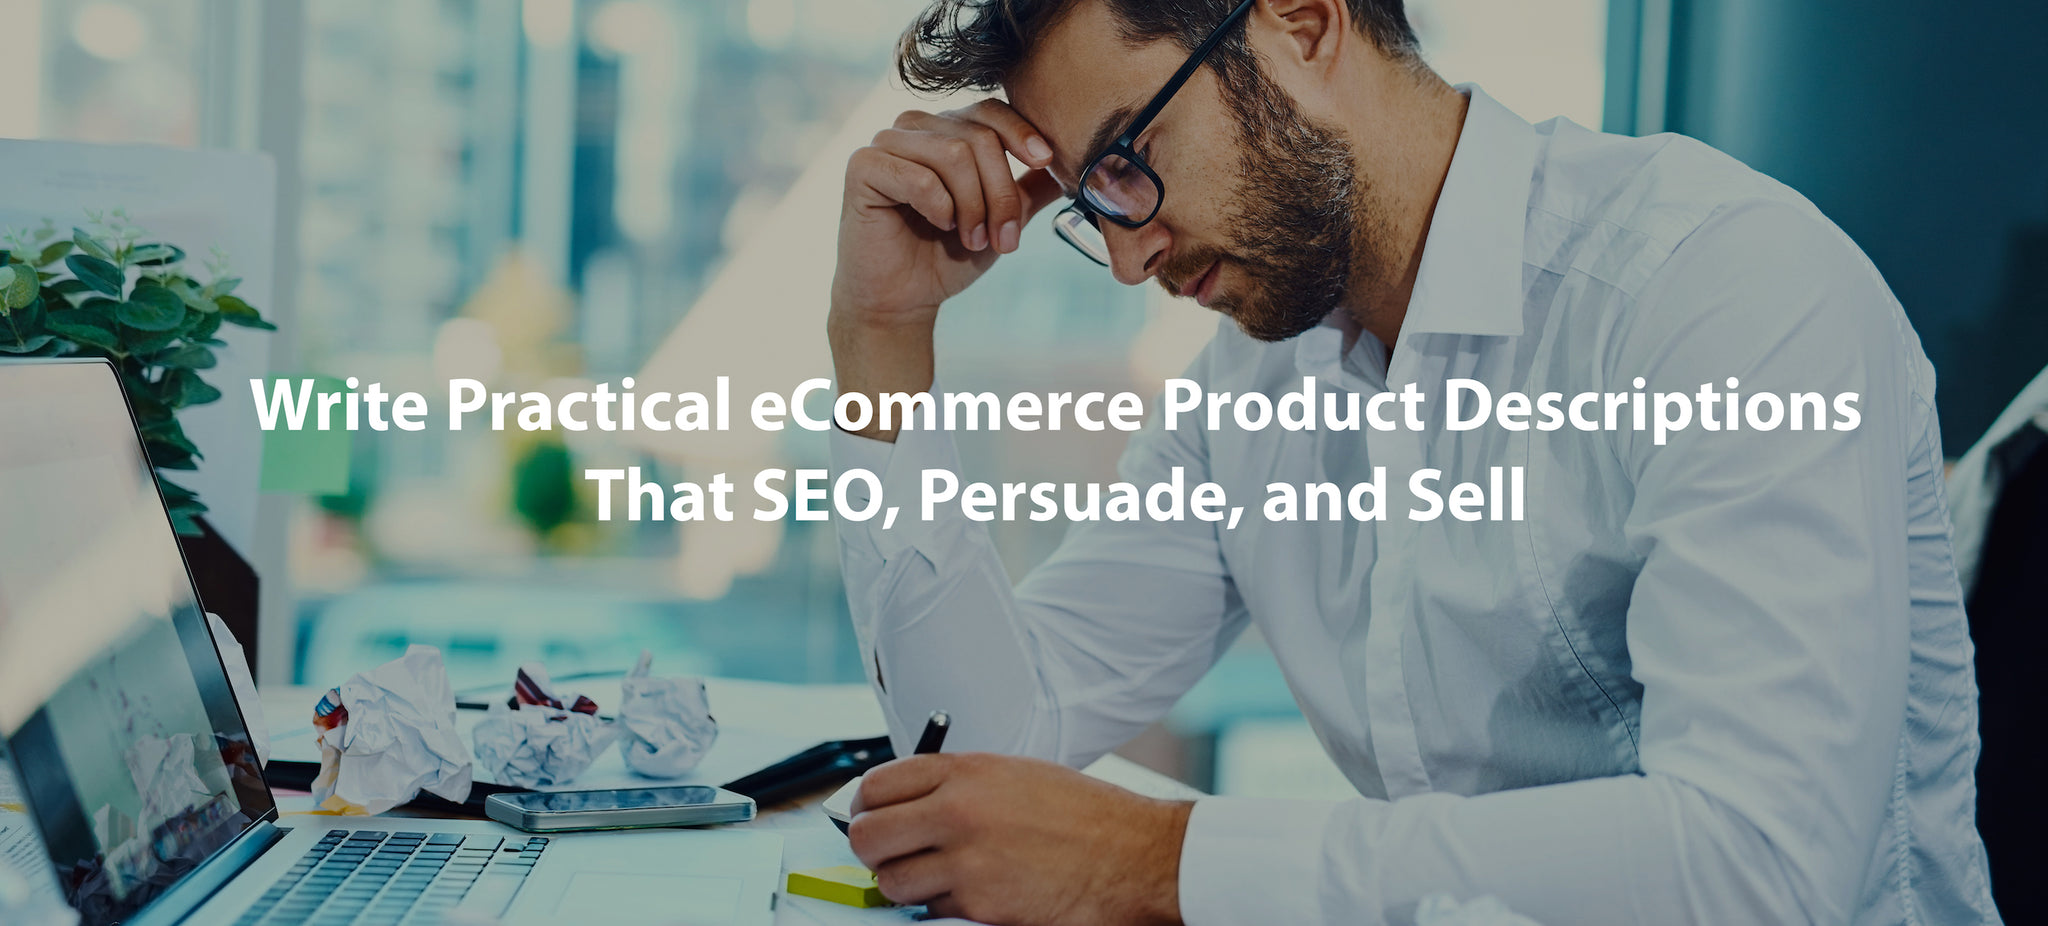 Write Practical eCommerce Product Descriptions That SEO, Persuade, AND Sell